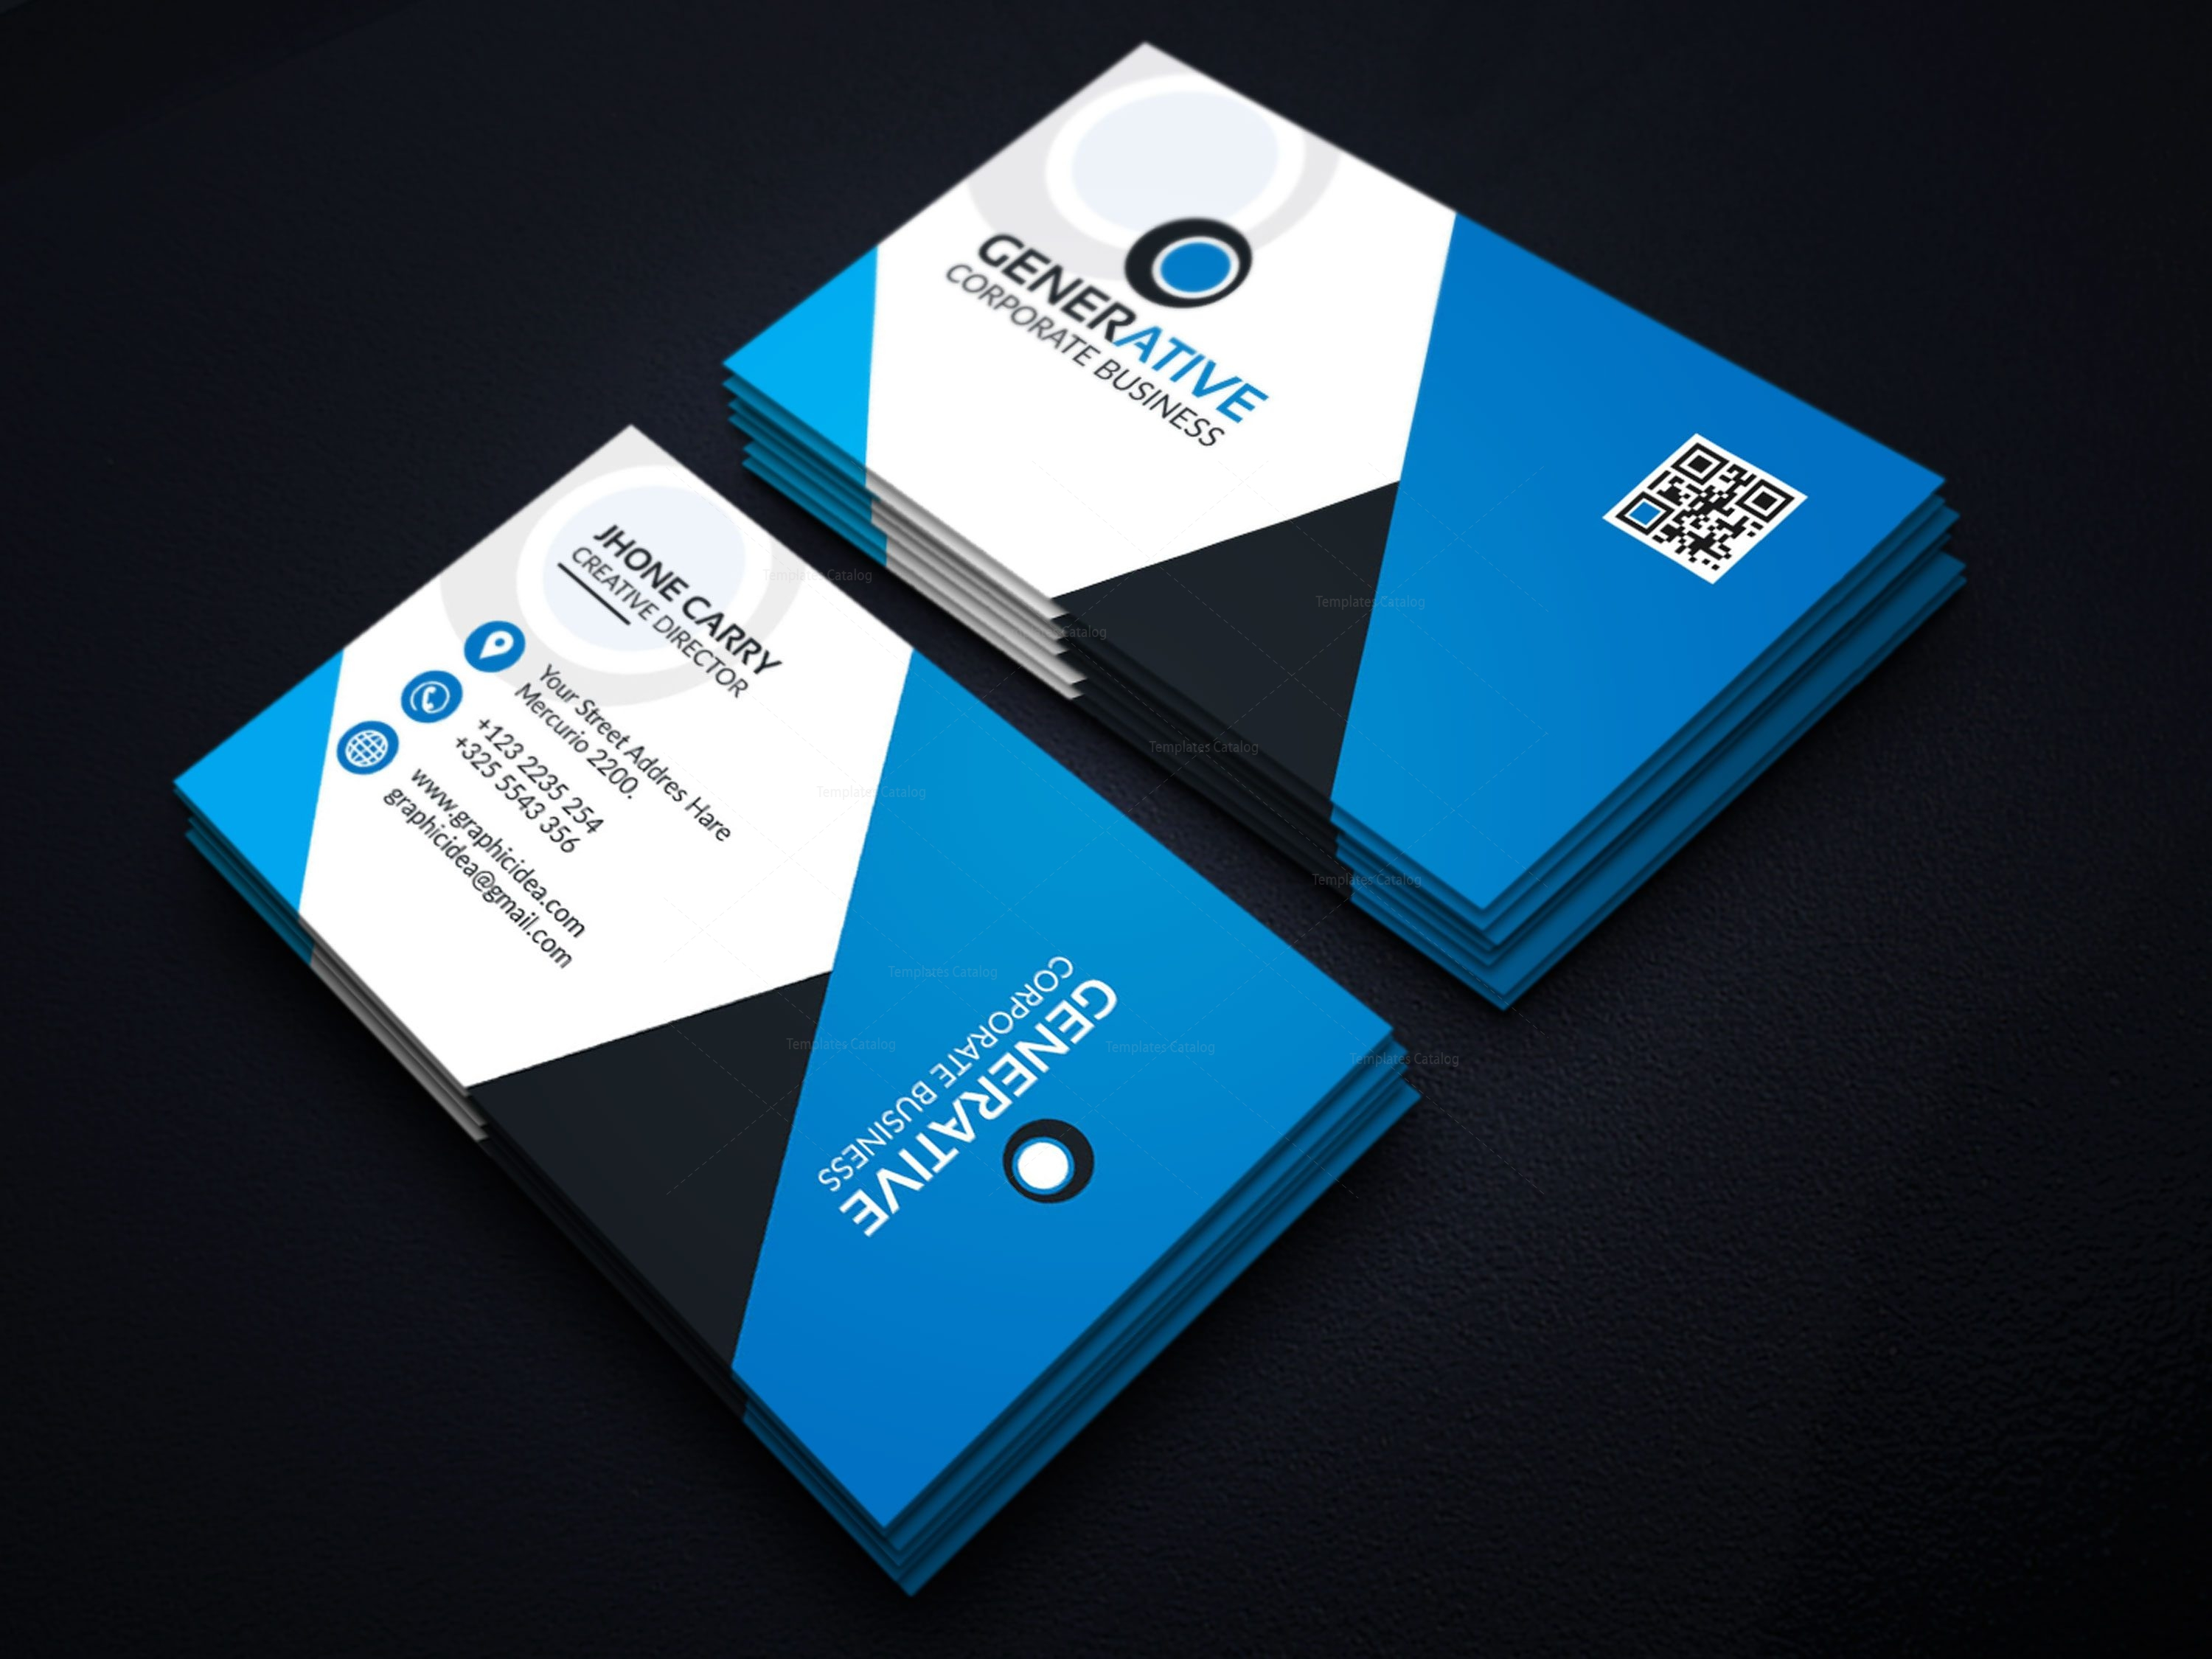 eps sleek business card design template 001599 template